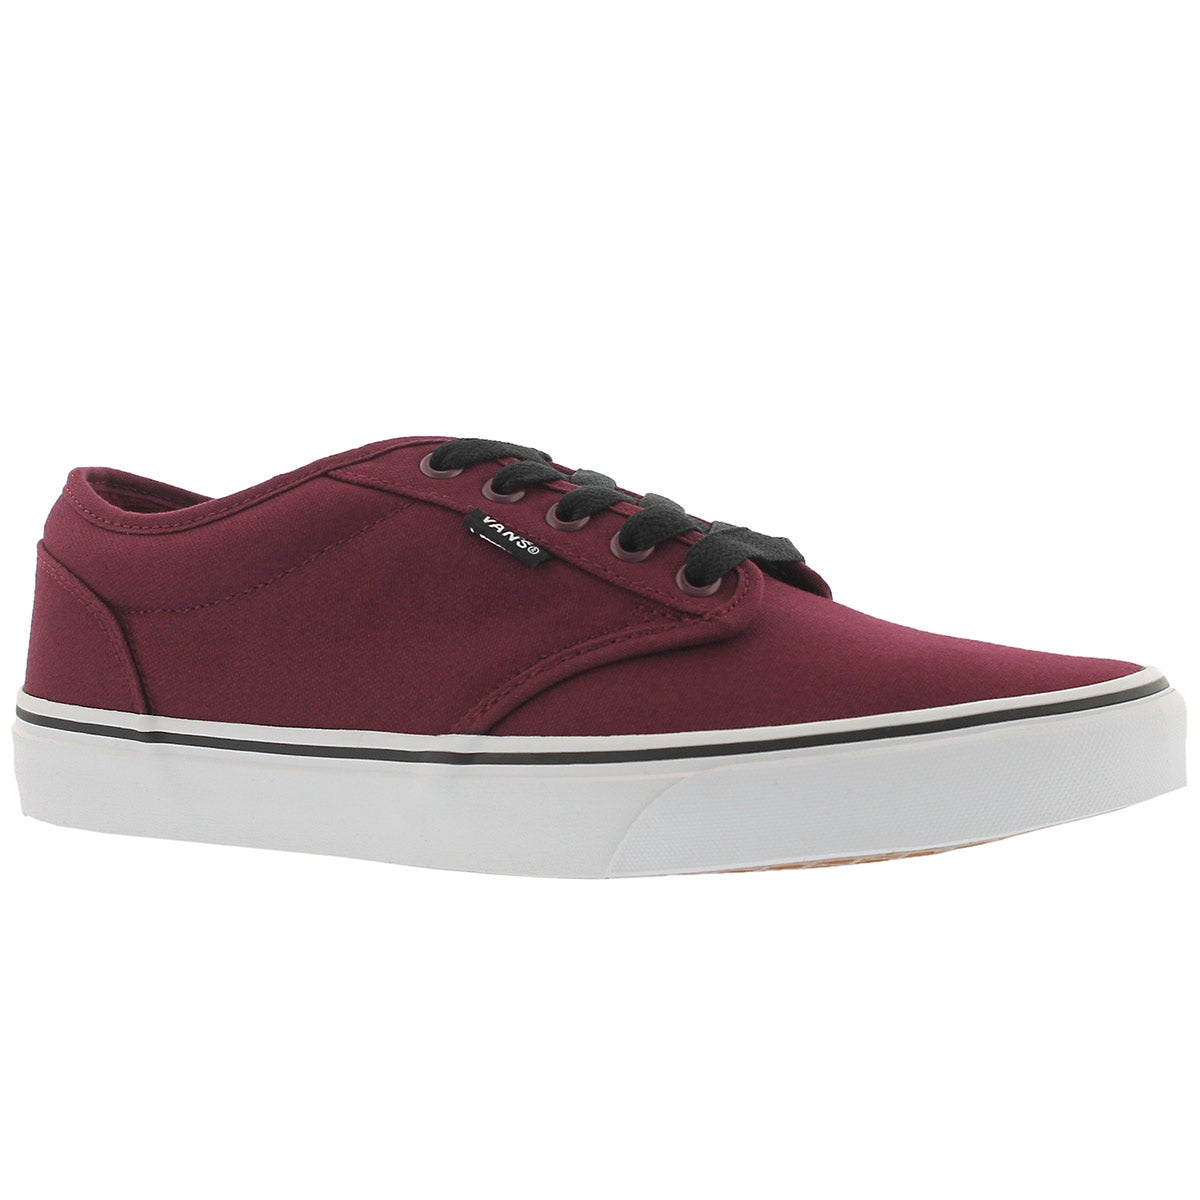 Men's ATWOOD oxblood canvas laceup sneakers